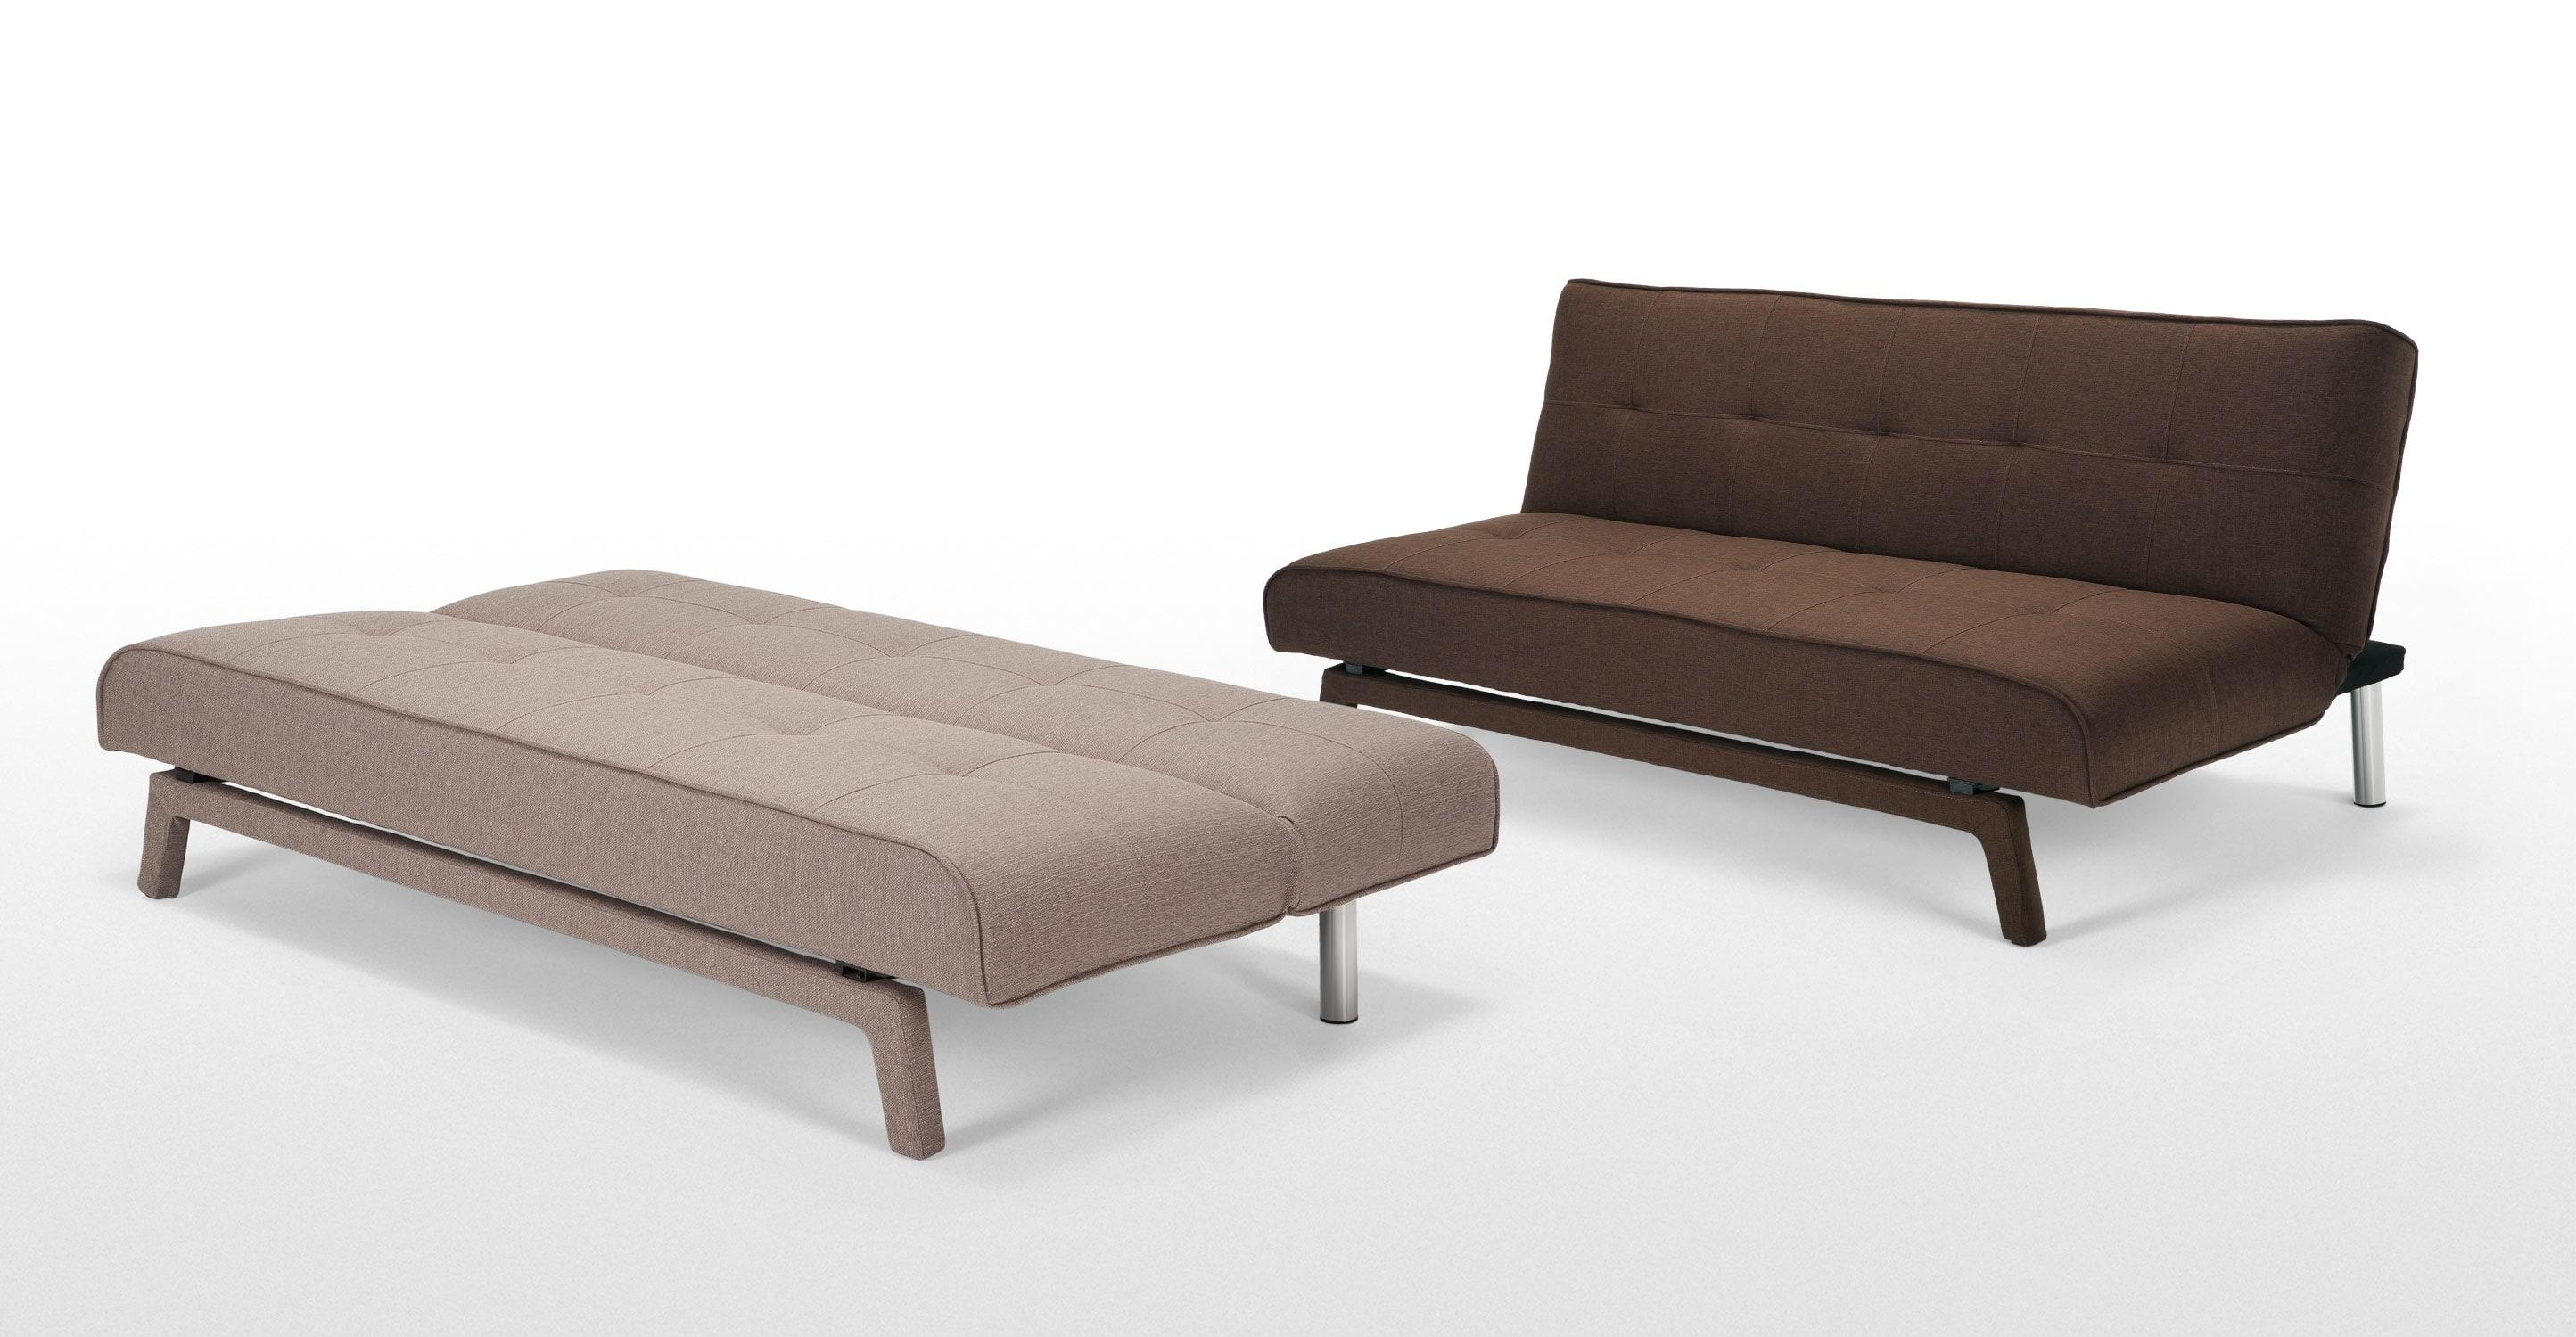 Sofas Center Awesome Sofa Teamnacl Mostable Mattress Ukmost Beds Within Unusual Sofa (View 8 of 20)